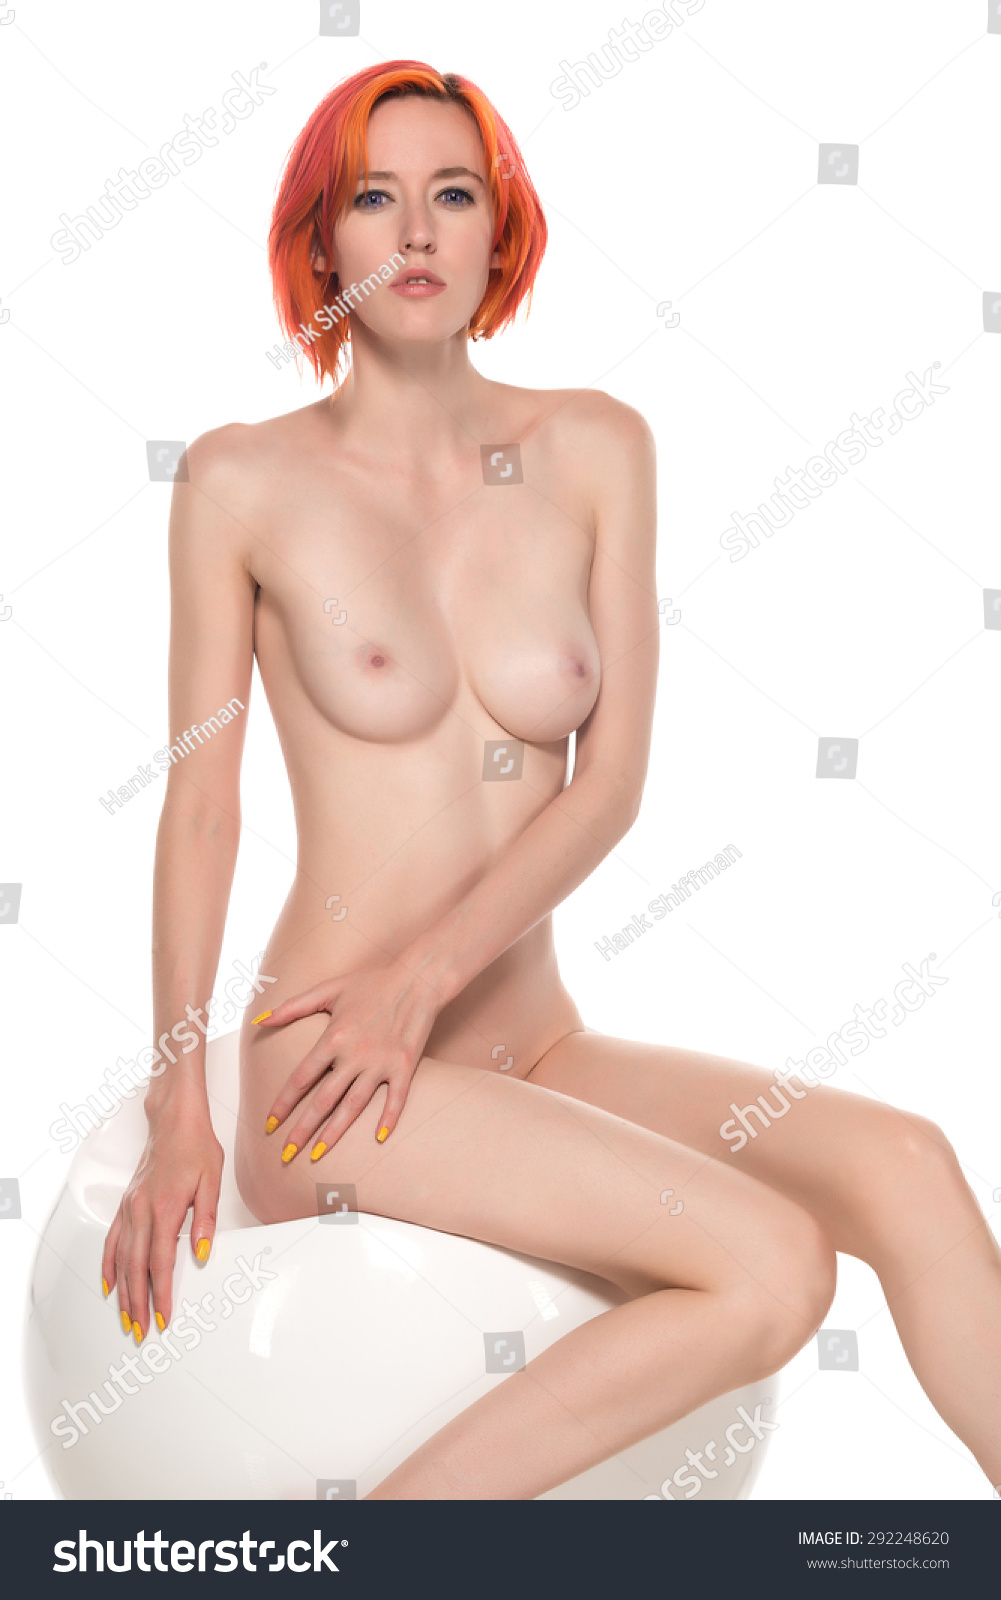 Free Red Hair Sex 100